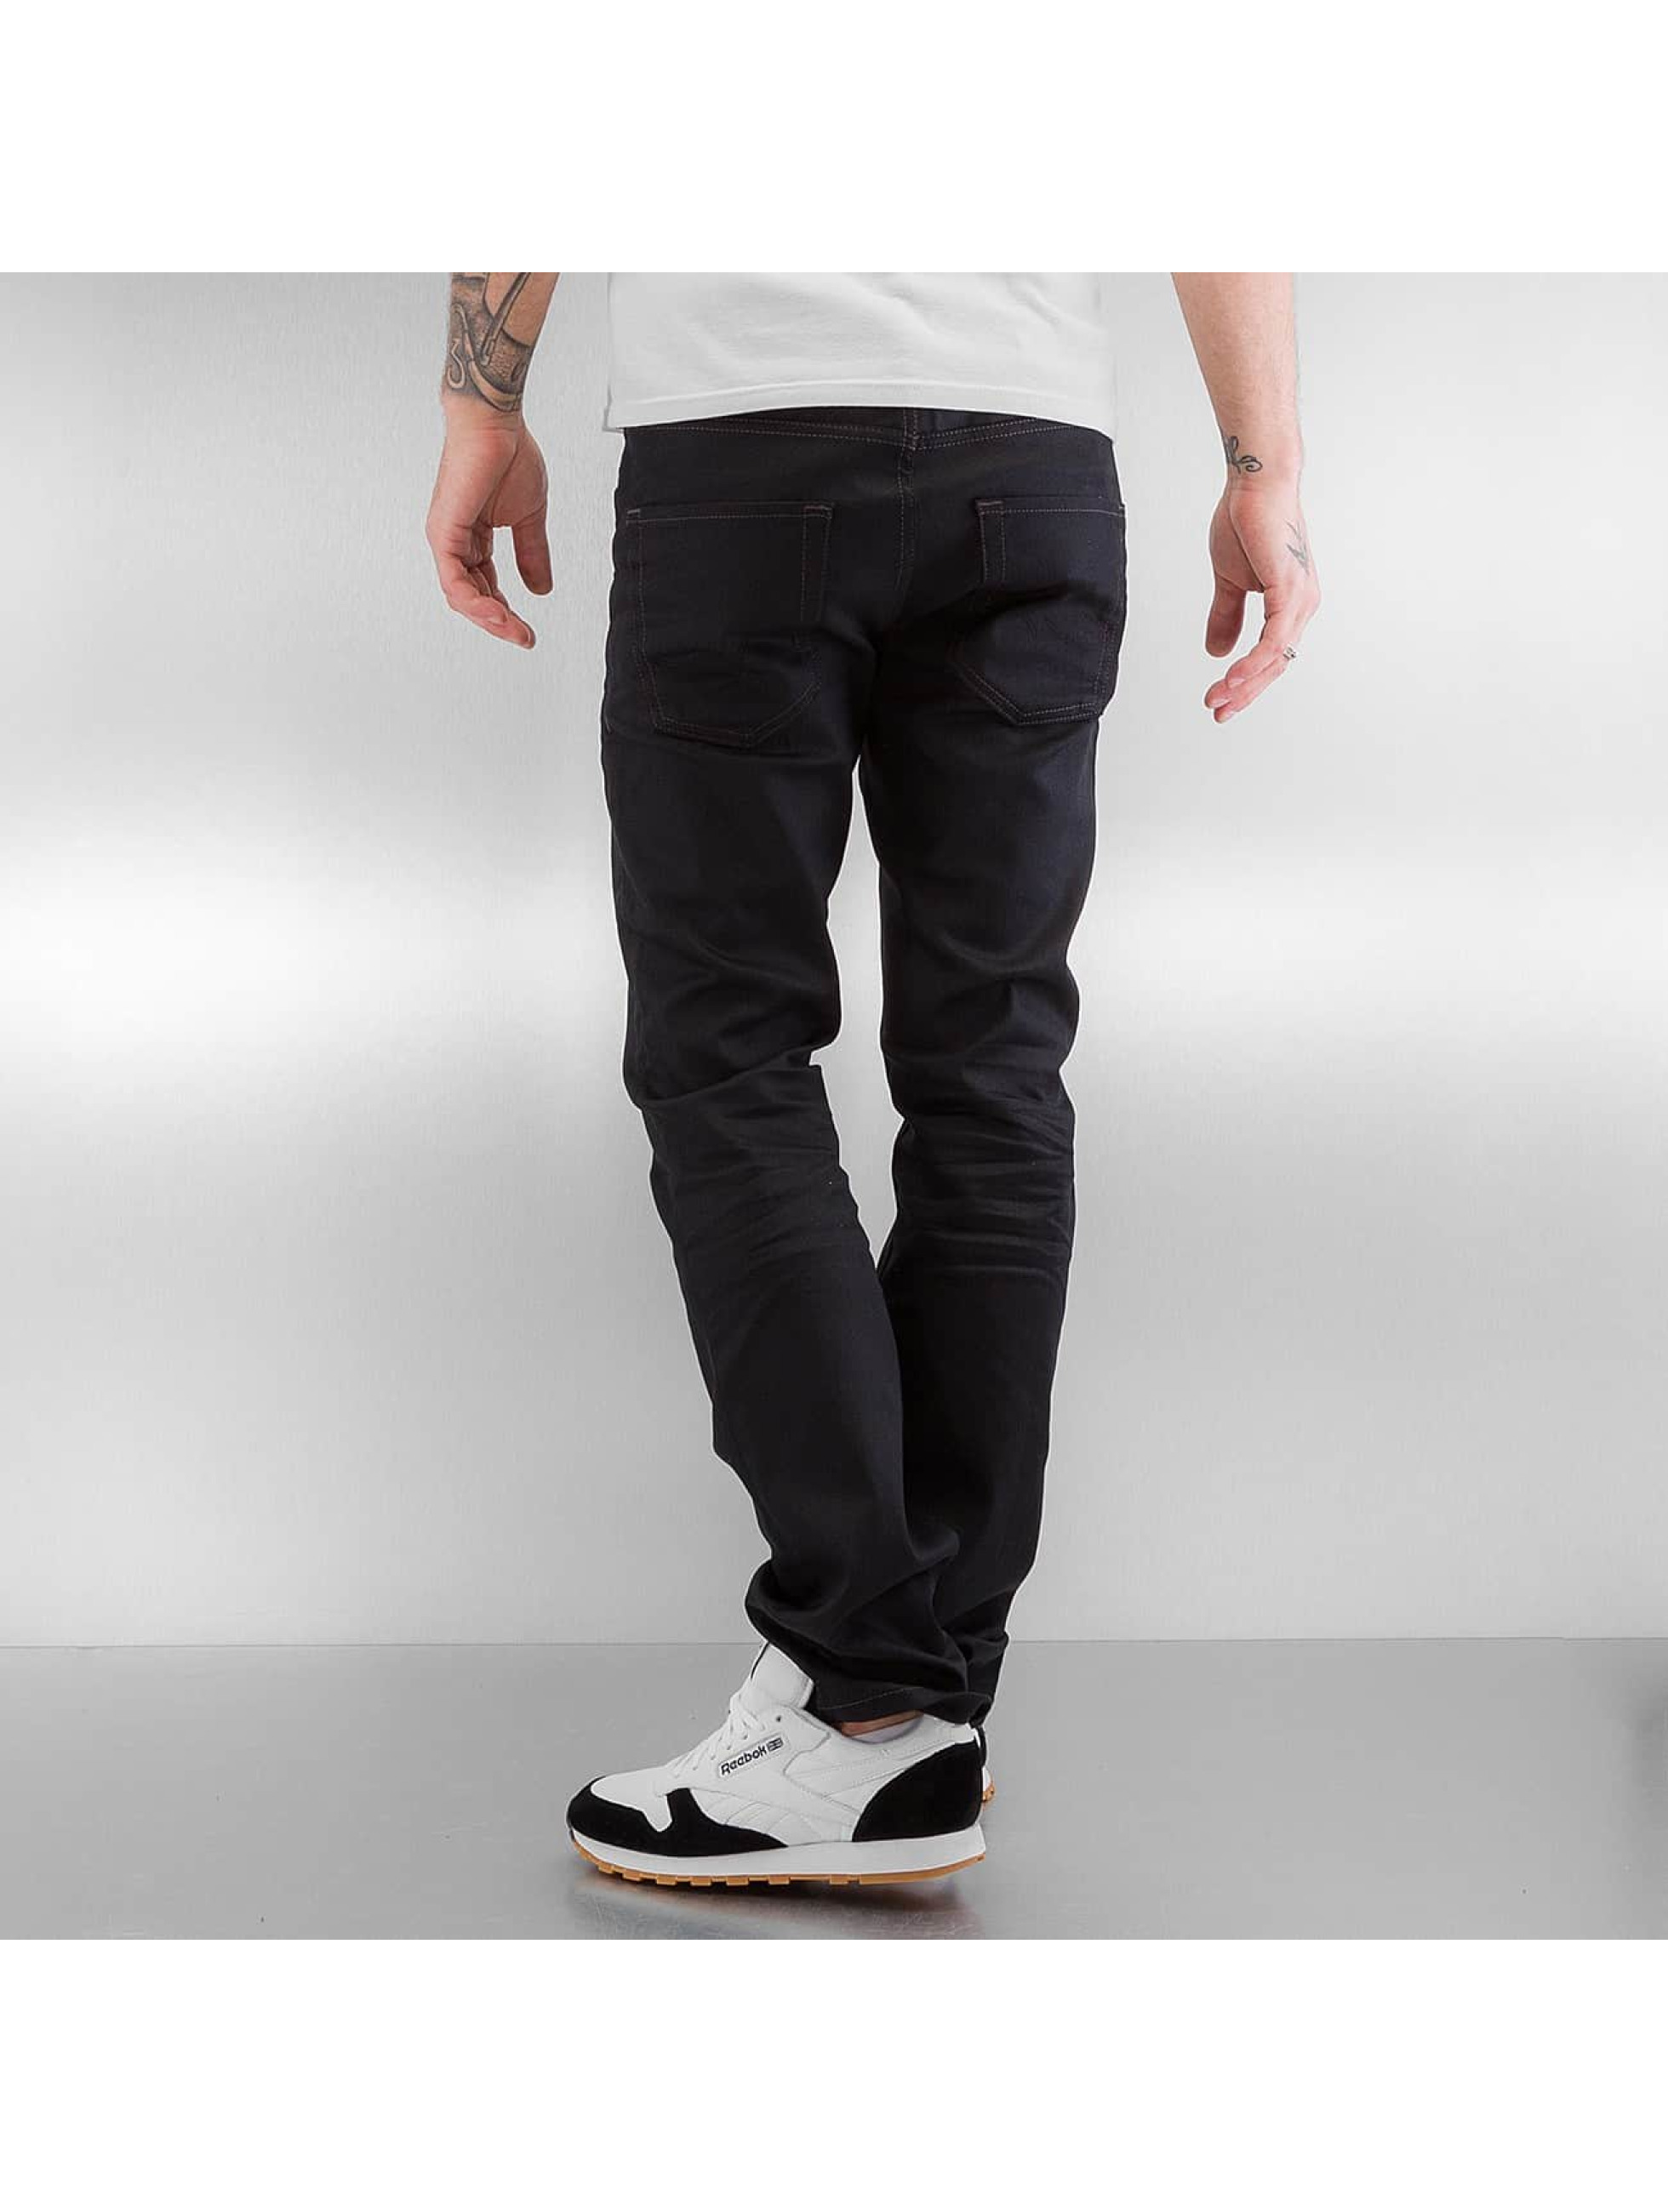 Jack & Jones Straight Fit Jeans jjIclark jjOriginal JOS 935 LID schwarz